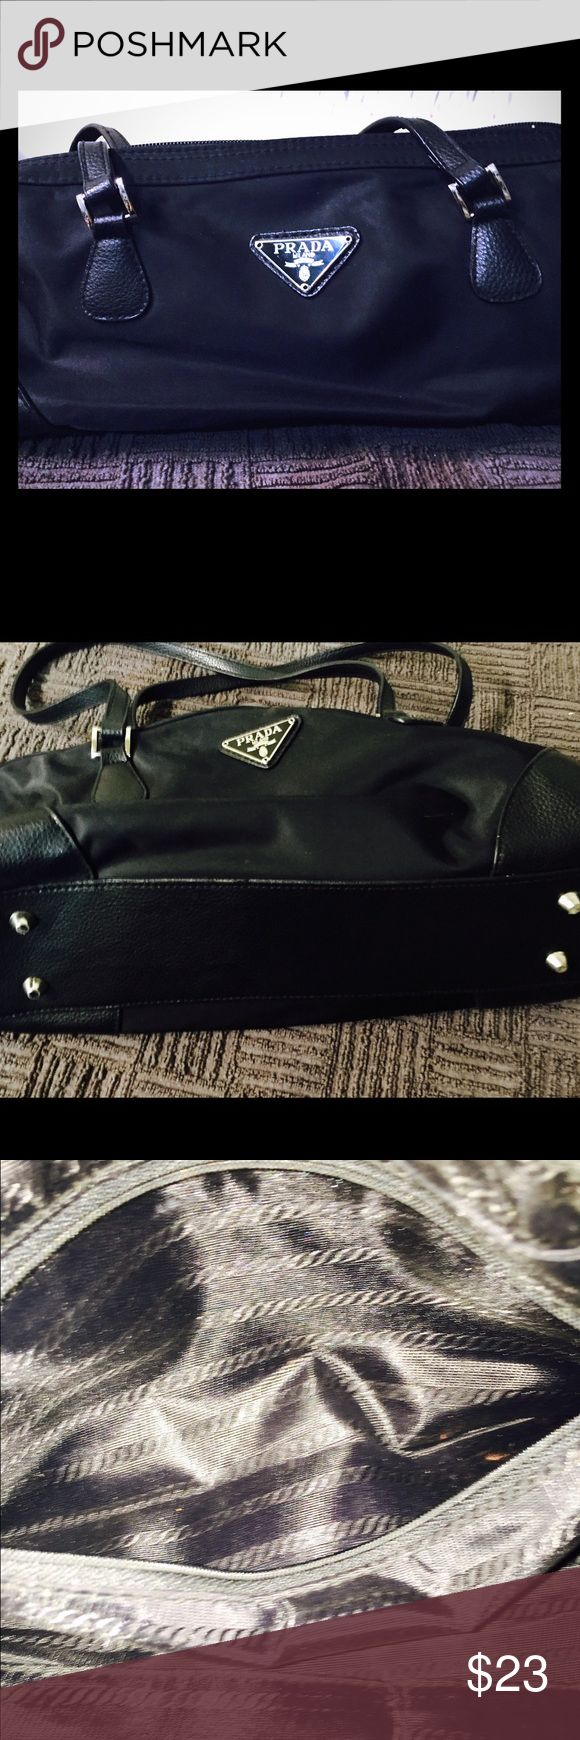 ❌NON Authentic Prada Purse❌ ❌NON AUTHENTIC PRADA PURSE❌. Condition is brand new and never used. You would have a hard time telling its not a real Prada Purse unless you were a Prada Expert. The purse looks exactly like the real thing and normal everyday people could not tell the difference. It has a double handle, zip closure, inside zip pocket and Prada emblem on the front. If I did know when bought from a purse party I swear it was the real thing, especially given the cost I paid for it…